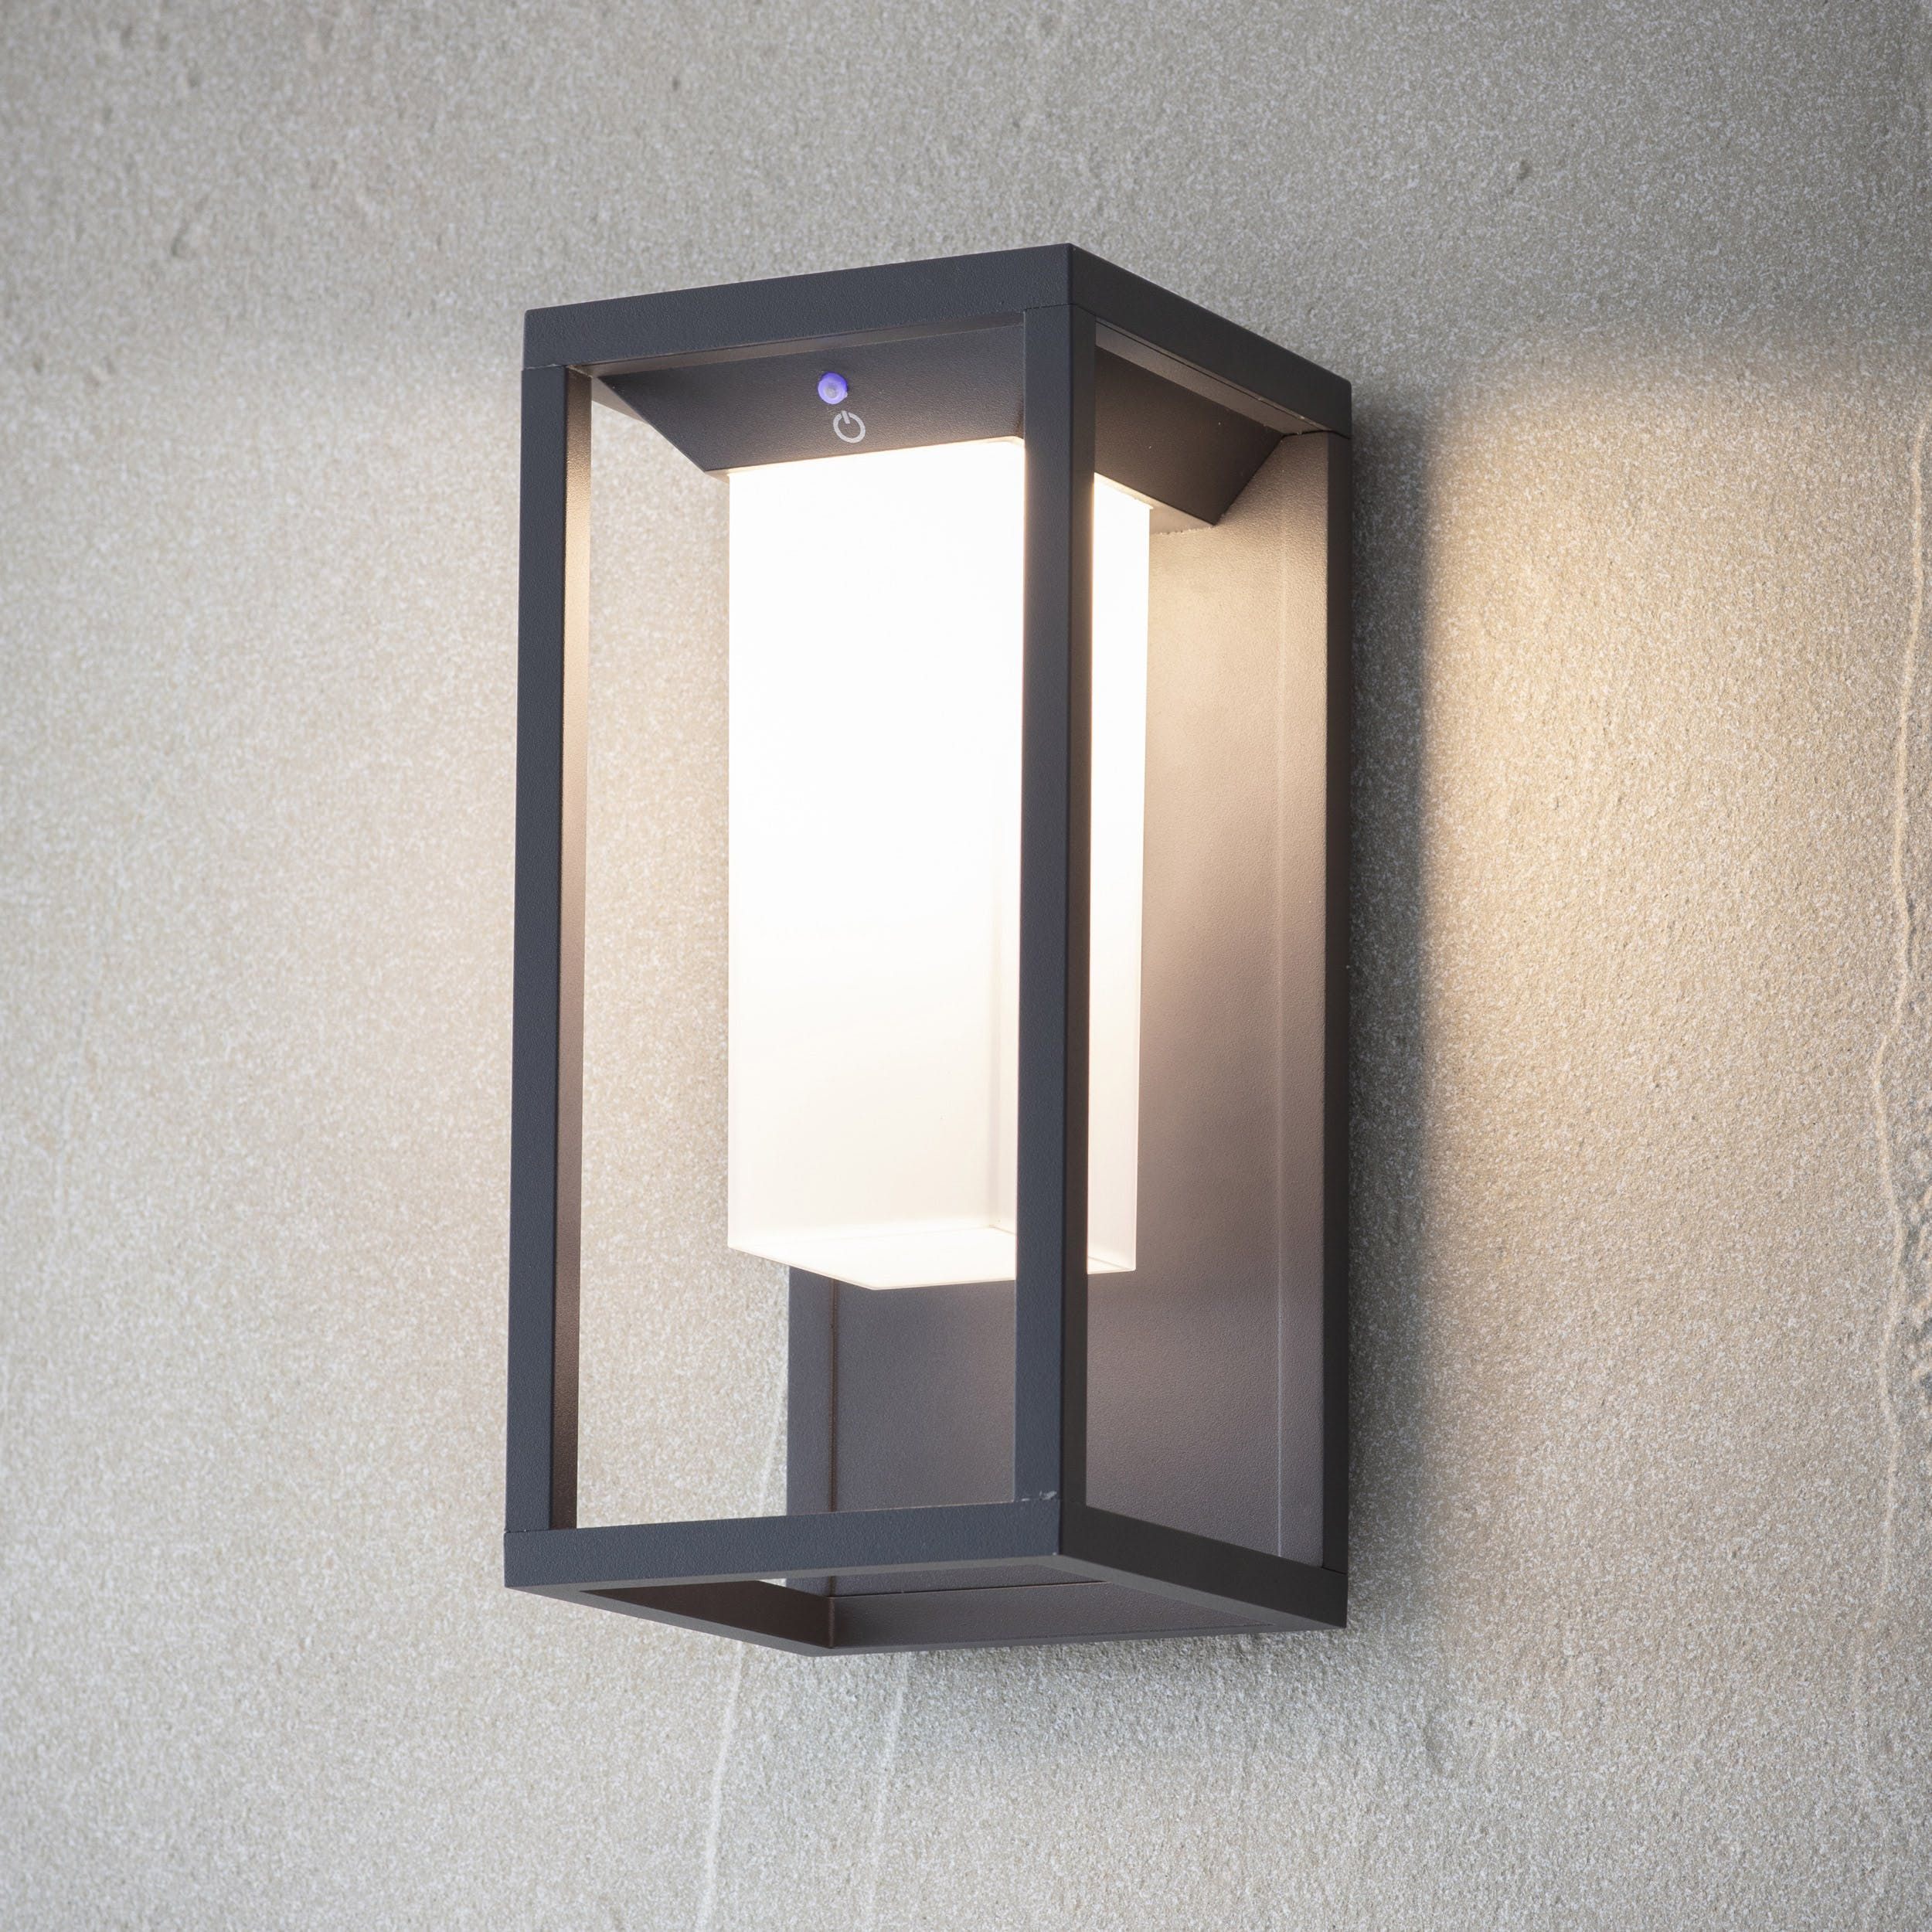 Power Your Home Sustainably With The Northwick Solar Wall Light Produced With A Grey Matt Powder Coate Solar Wall Lights Outdoor Solar Wall Lights Wall Lights